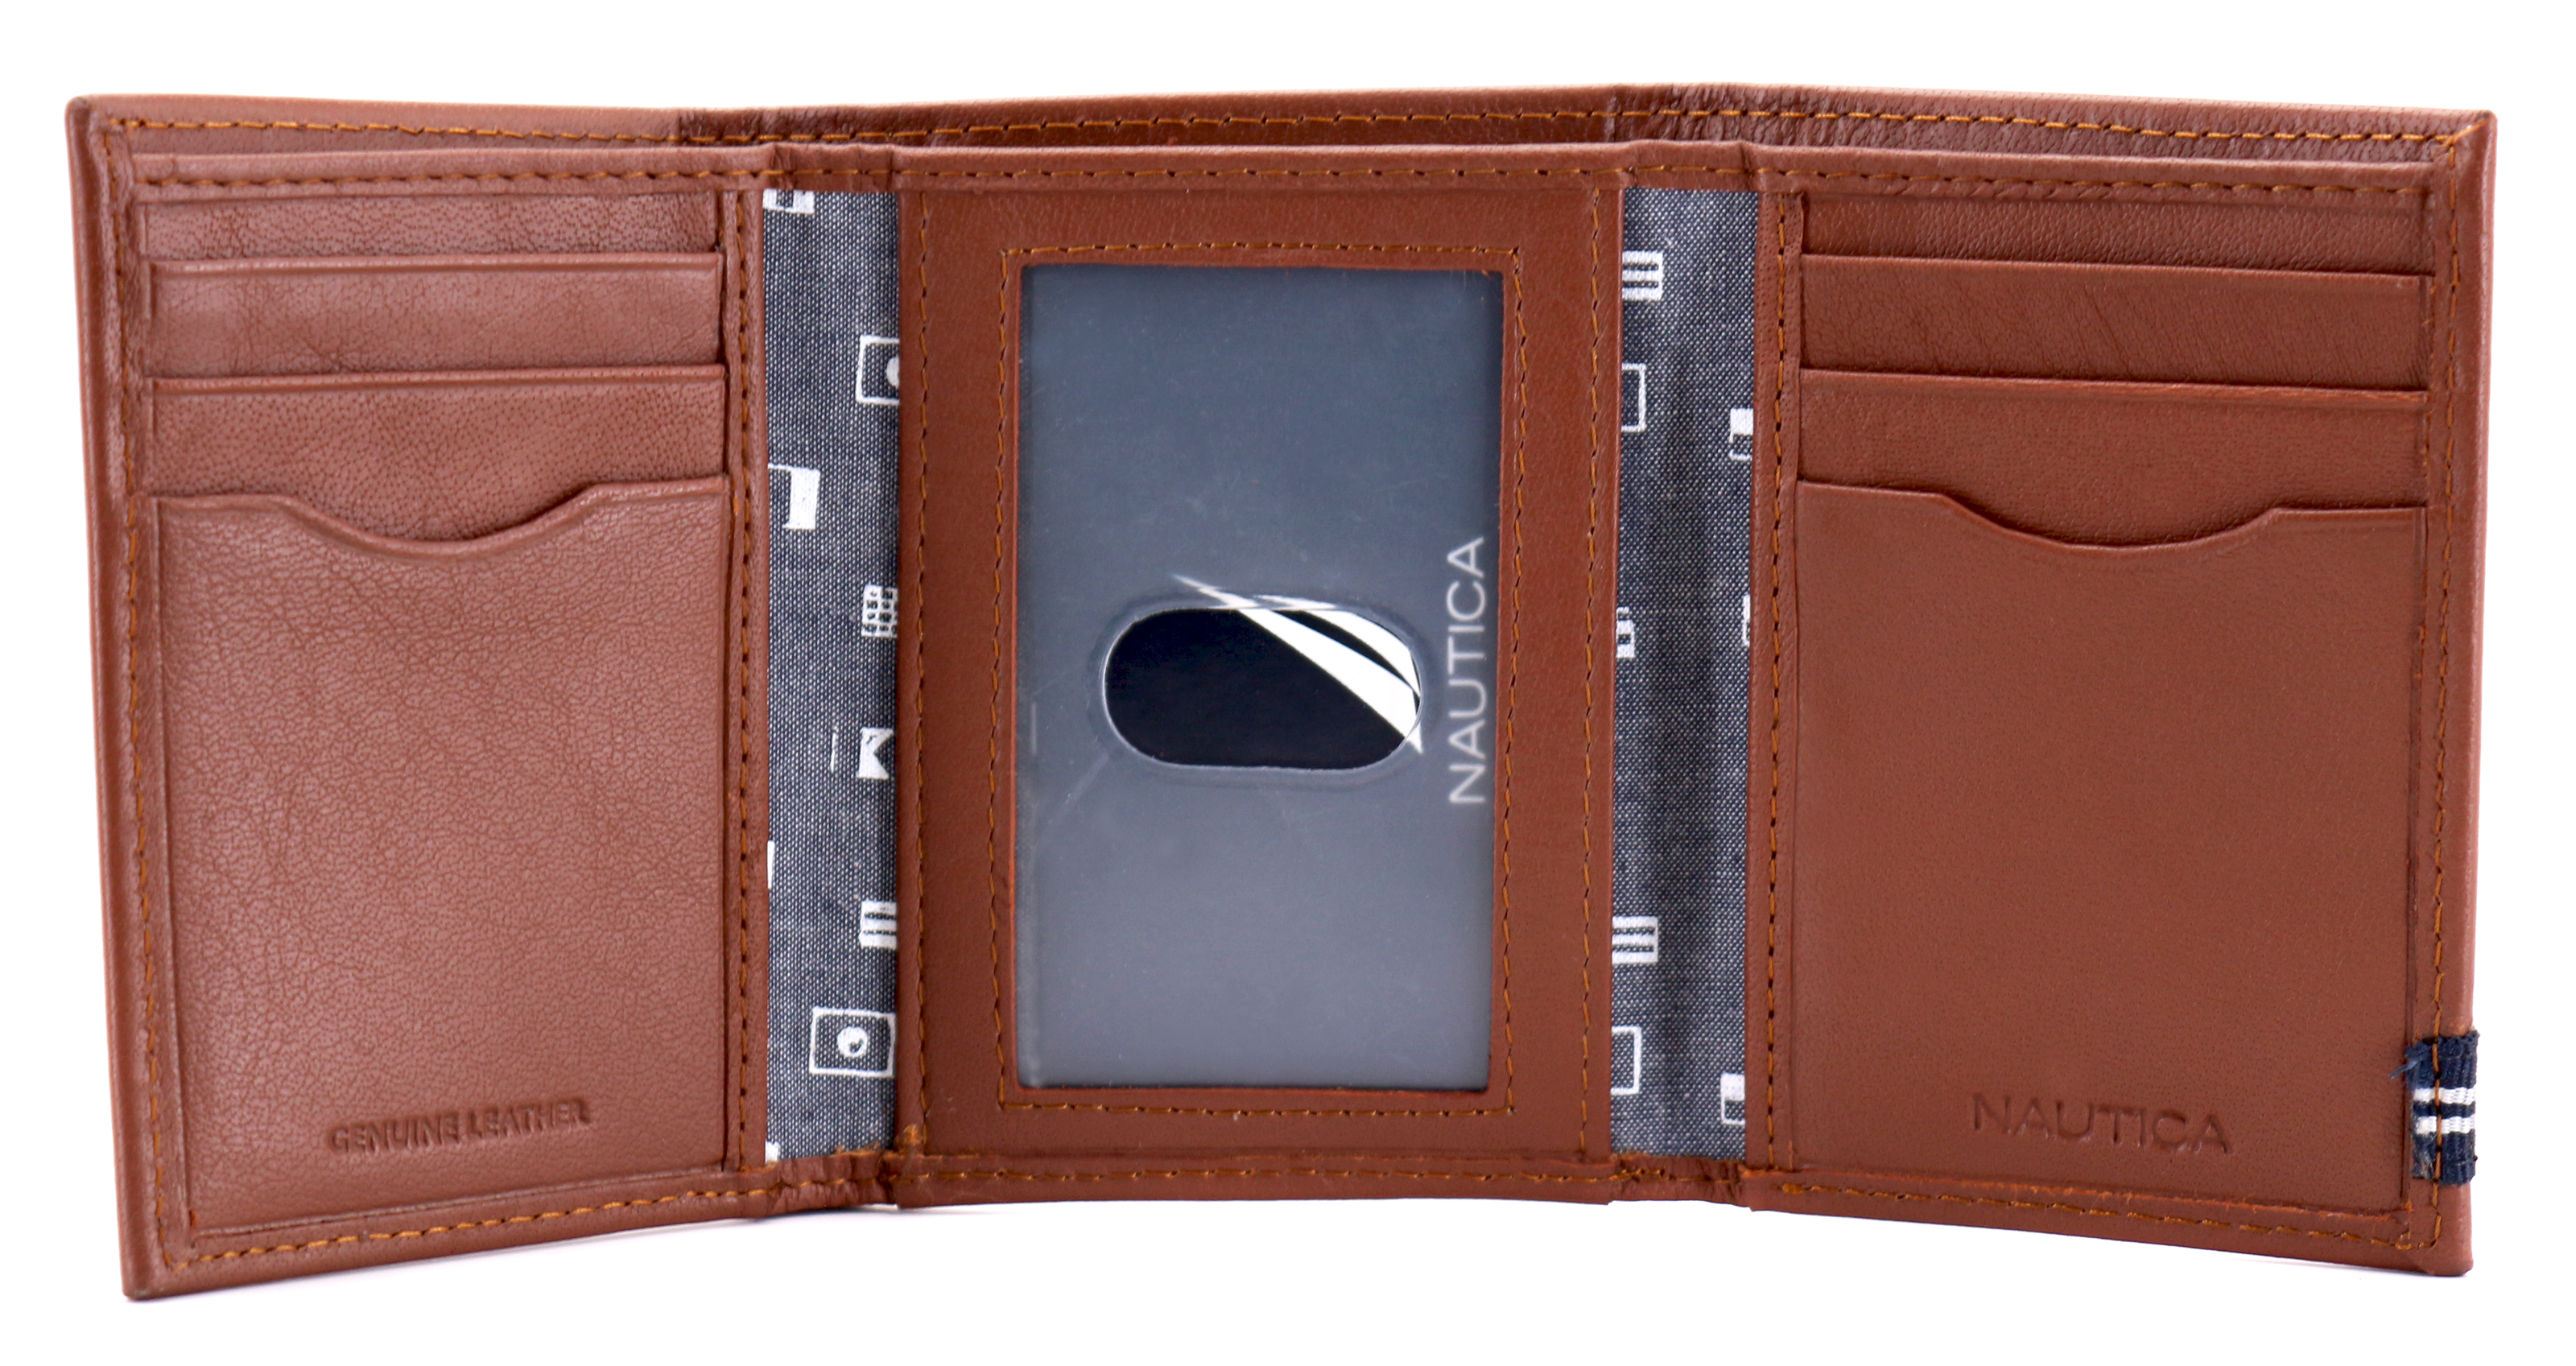 Nautica-Men-039-s-Genuine-Leather-Credit-Card-Id-Holder-Trifold-Wallet thumbnail 27